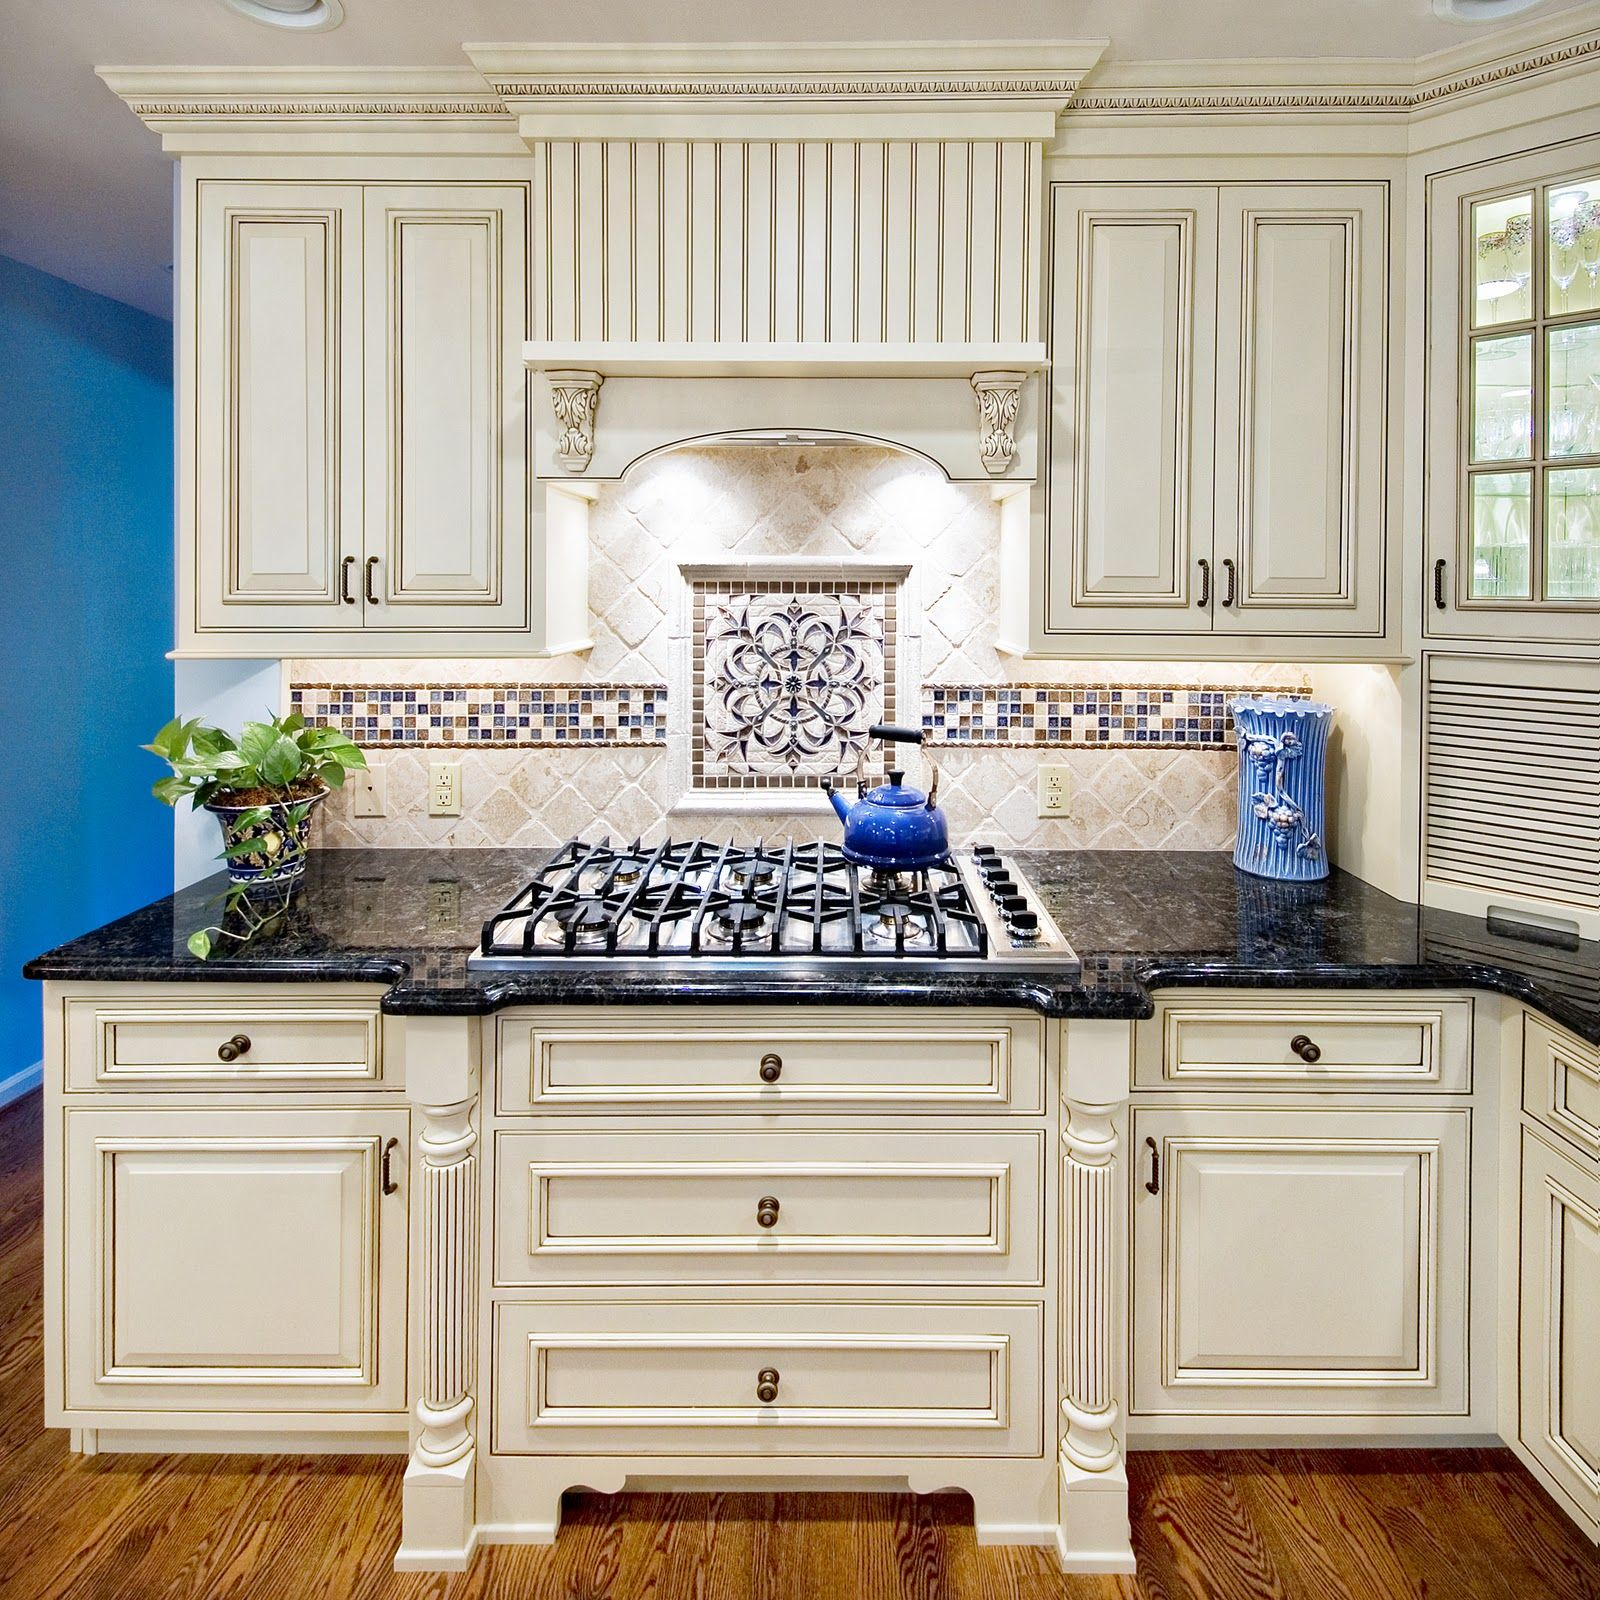 Kitchen : Kitchen Cream Cabinets Dark Blue Exclusive Design Kitchen Cream  Cabinets Dark Blue Accent Backsplash Blue Kitchen Backsplash Dark Cabinets  Blue ...